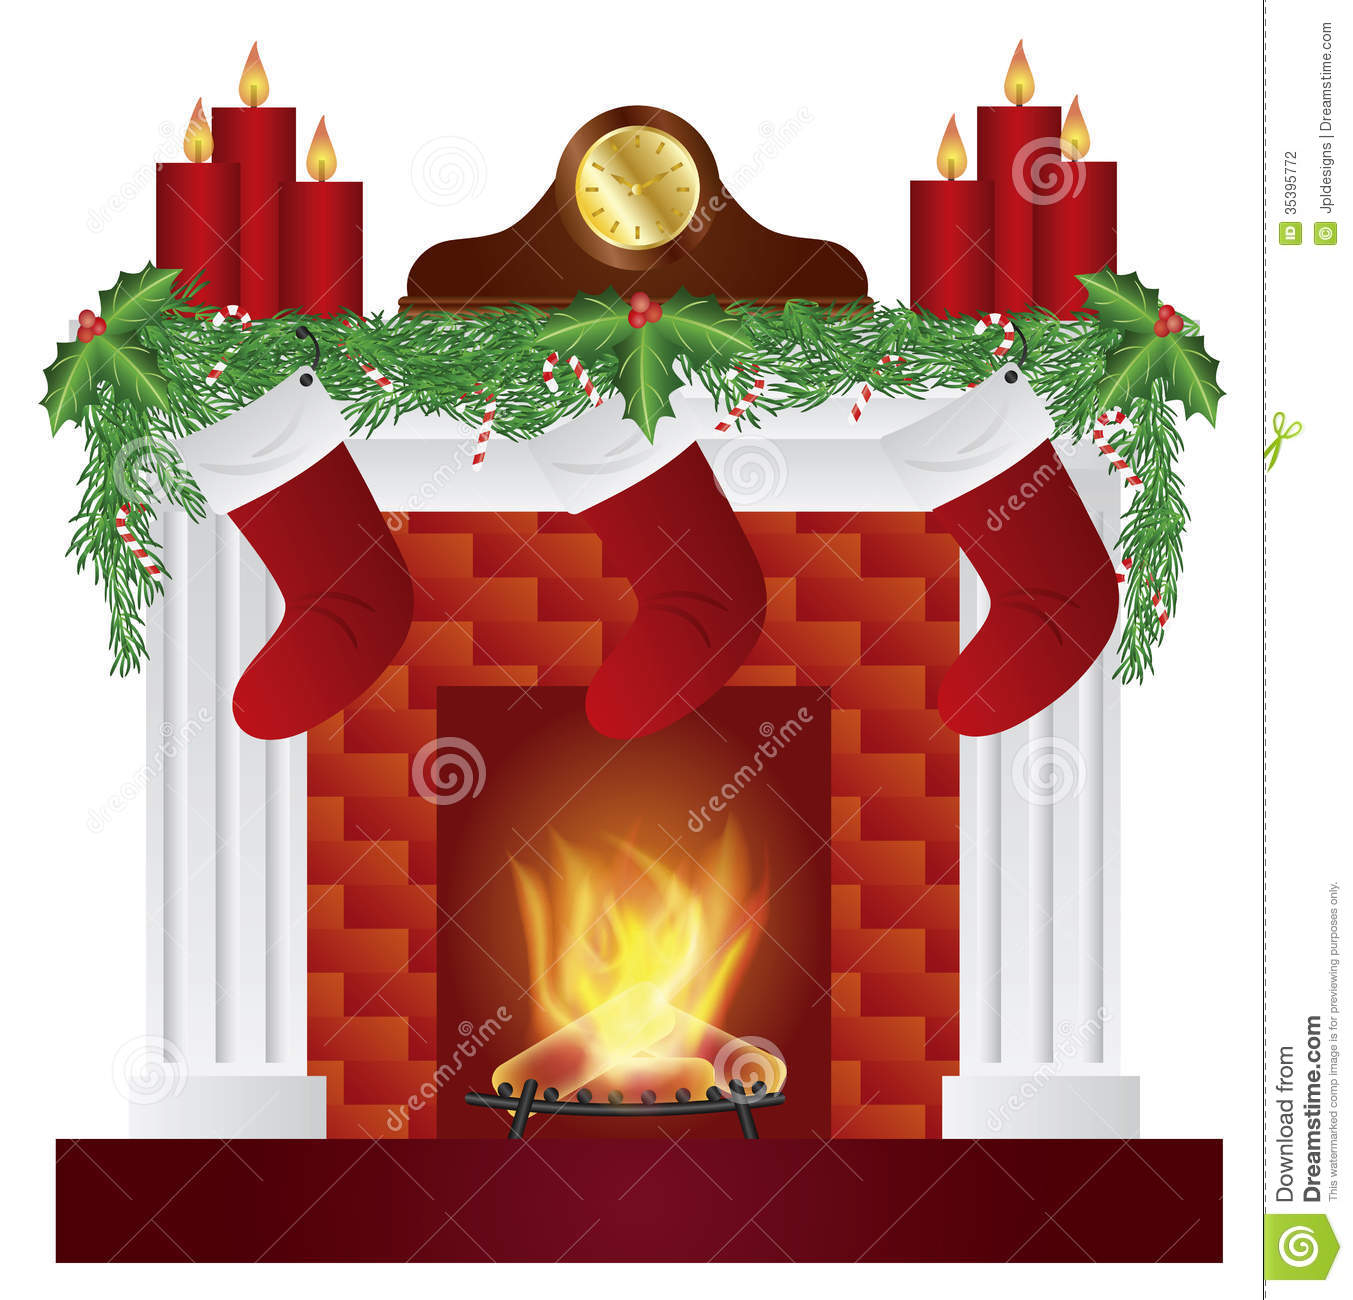 Fireplace With Christmas Decoration Garland Stockings Candles Mantel